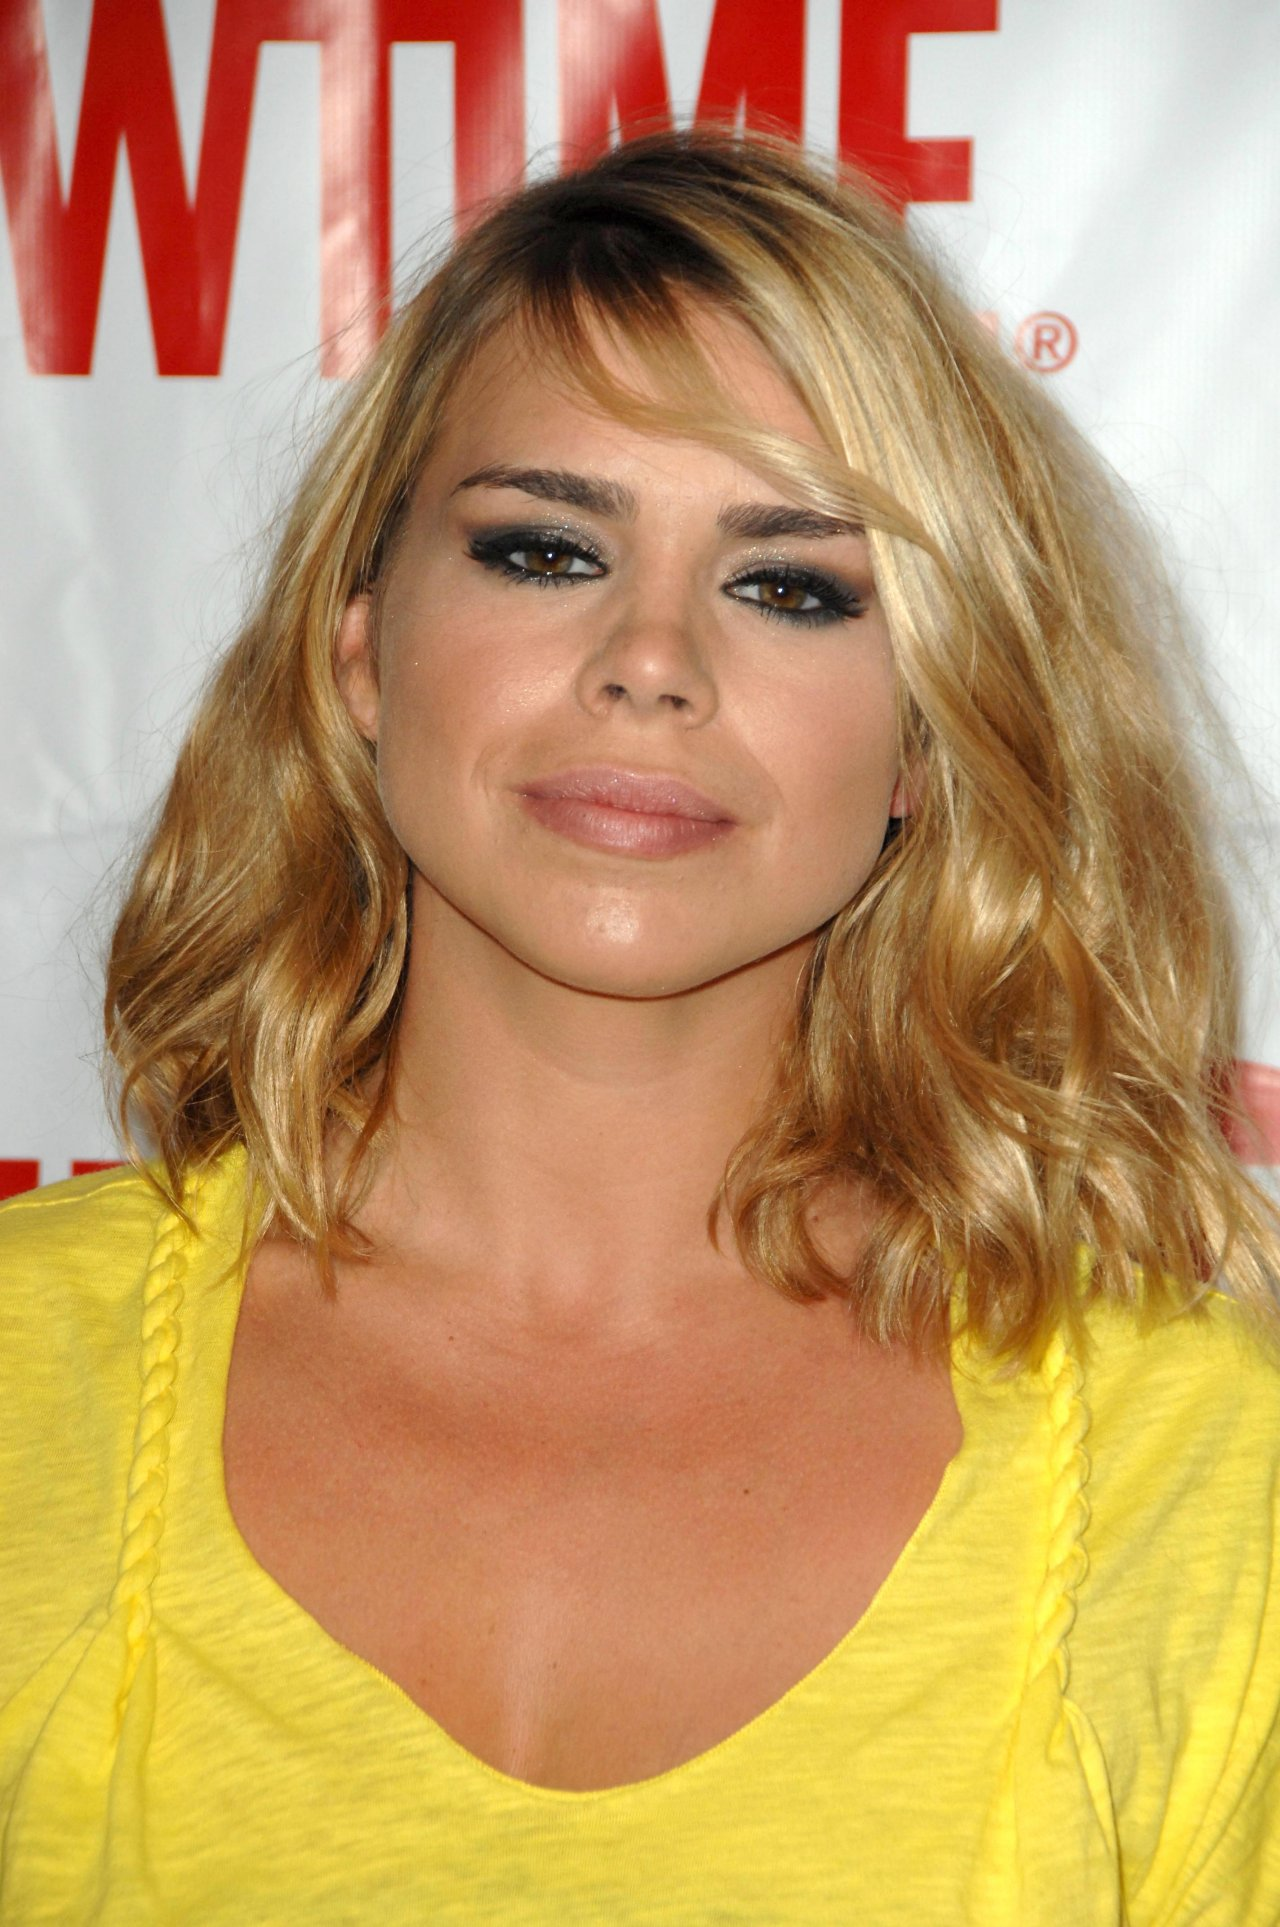 Pictures Billie Piper nude (86 photo), Pussy, Is a cute, Instagram, underwear 2017